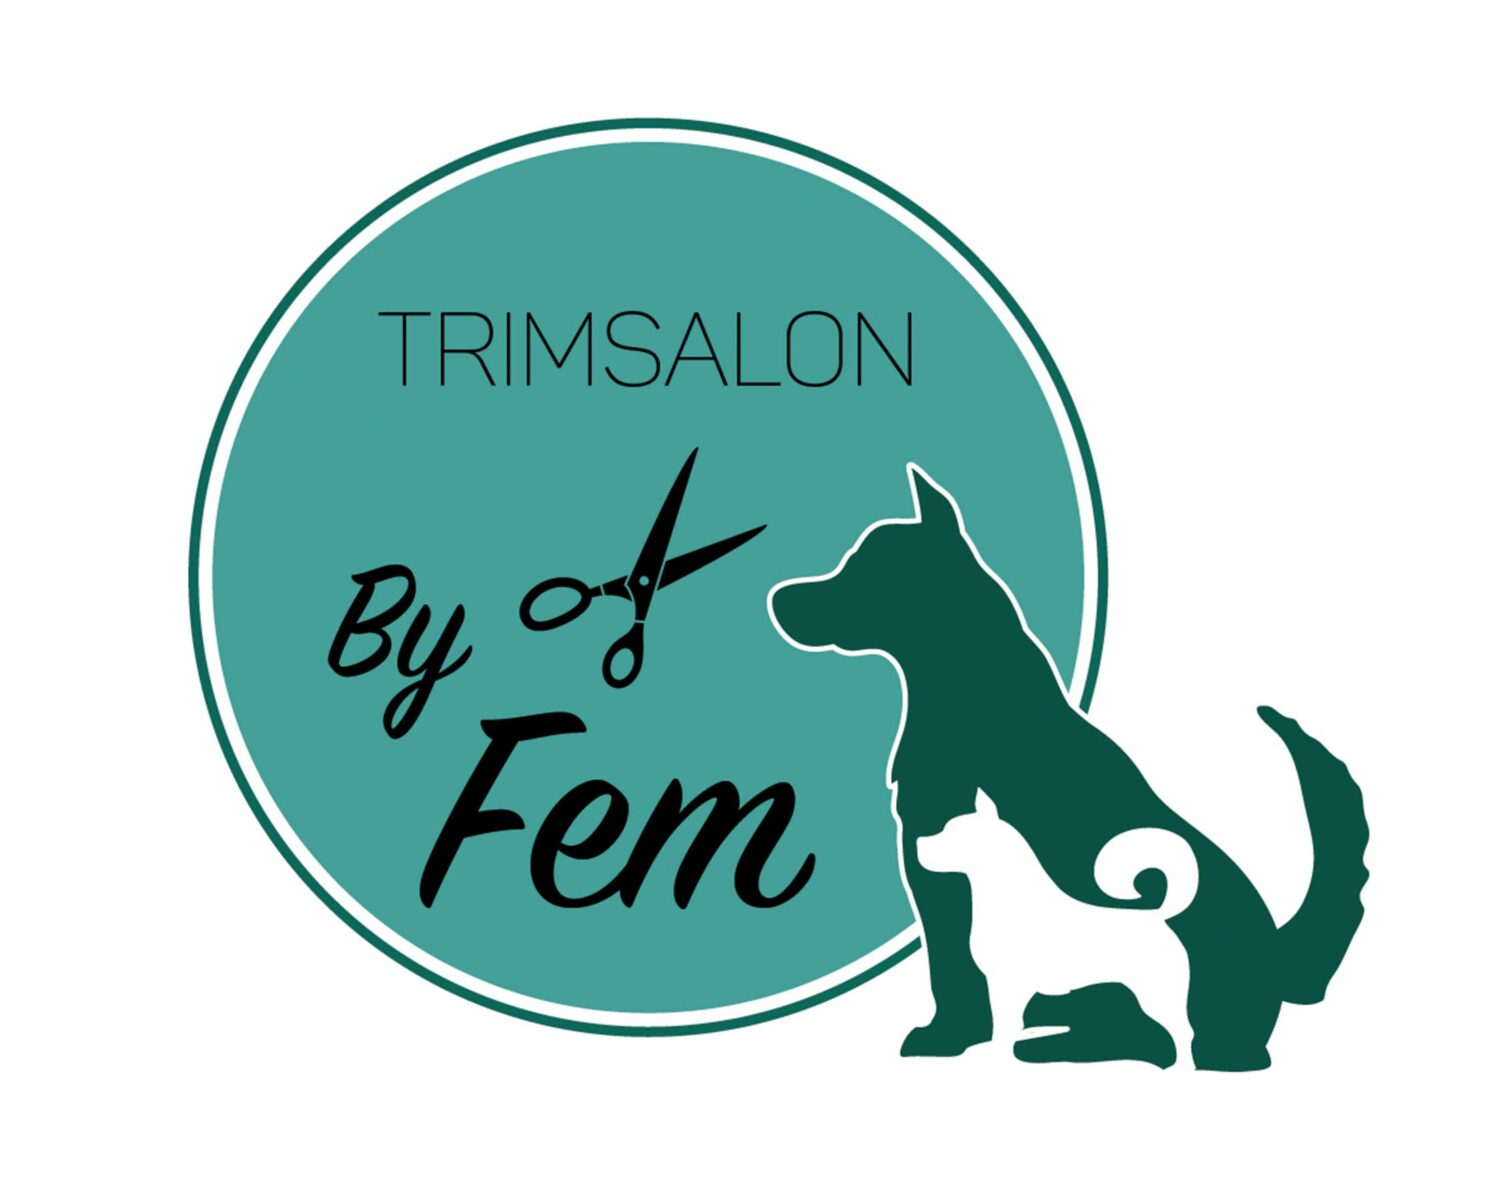 Logo trimsalon by fem